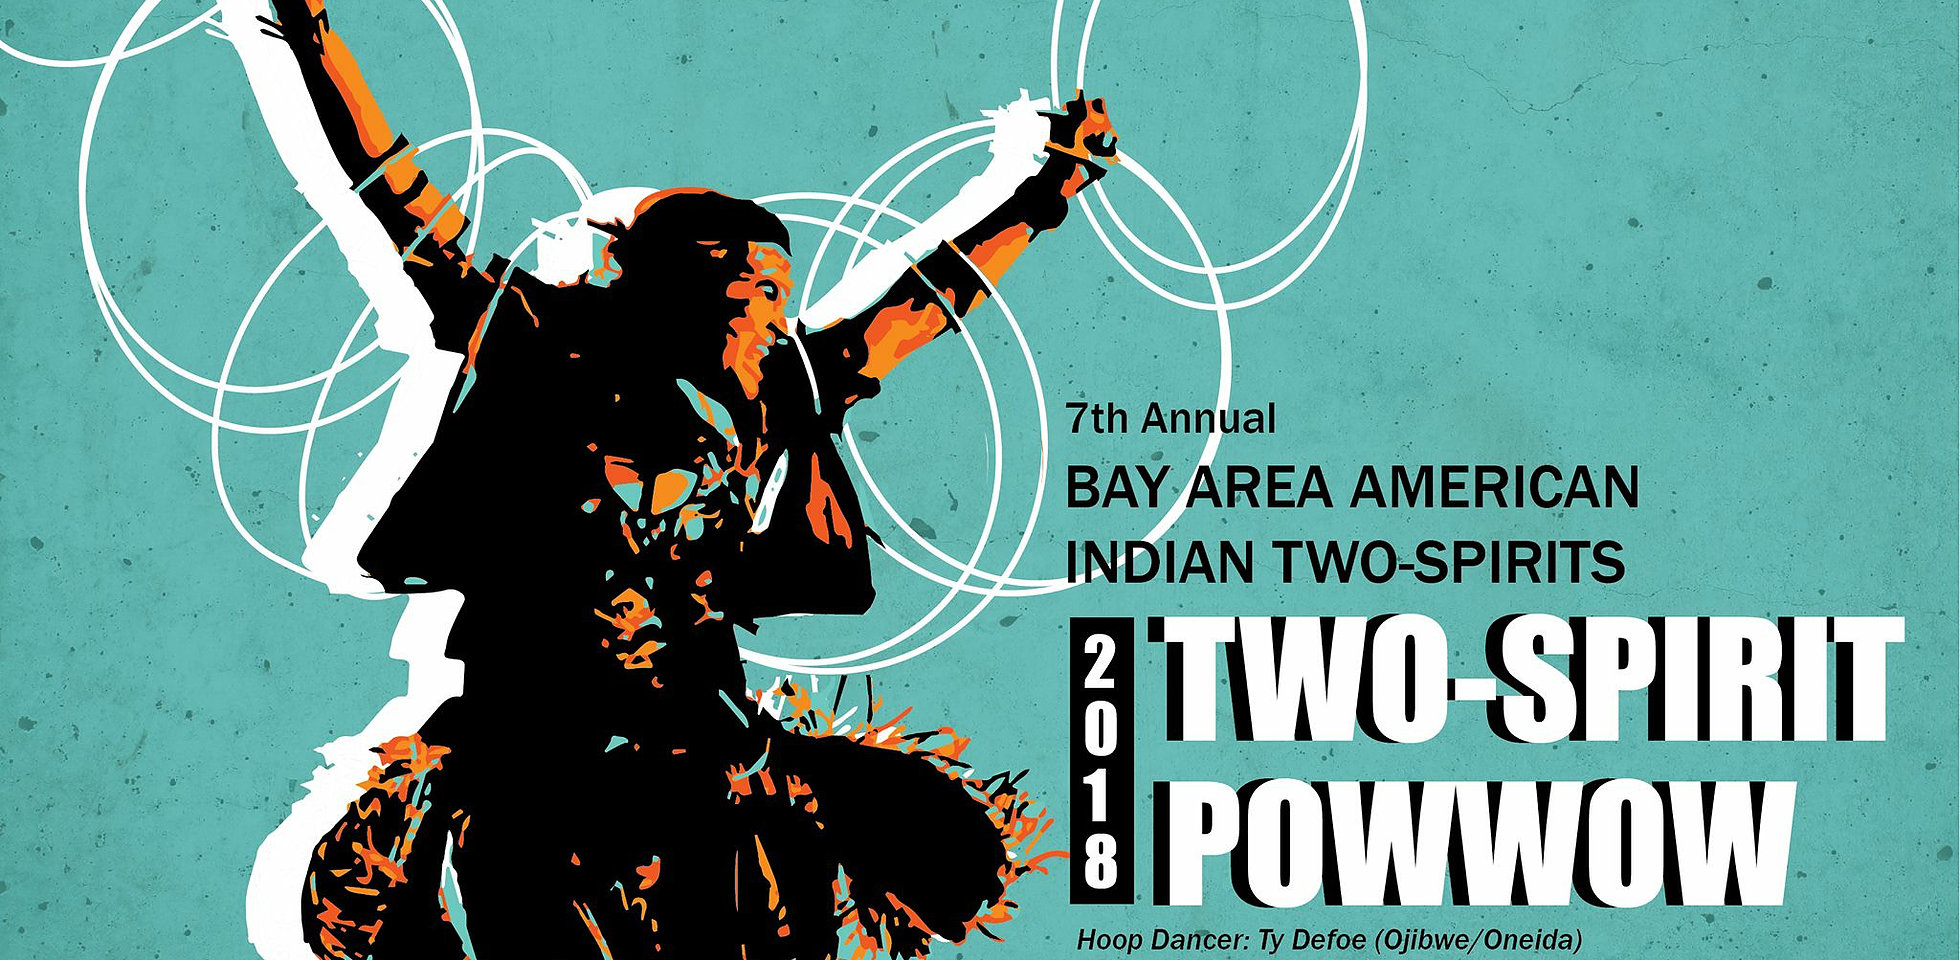 Bay Area American Indian Two-Spirits prepare for seventh annual powwow